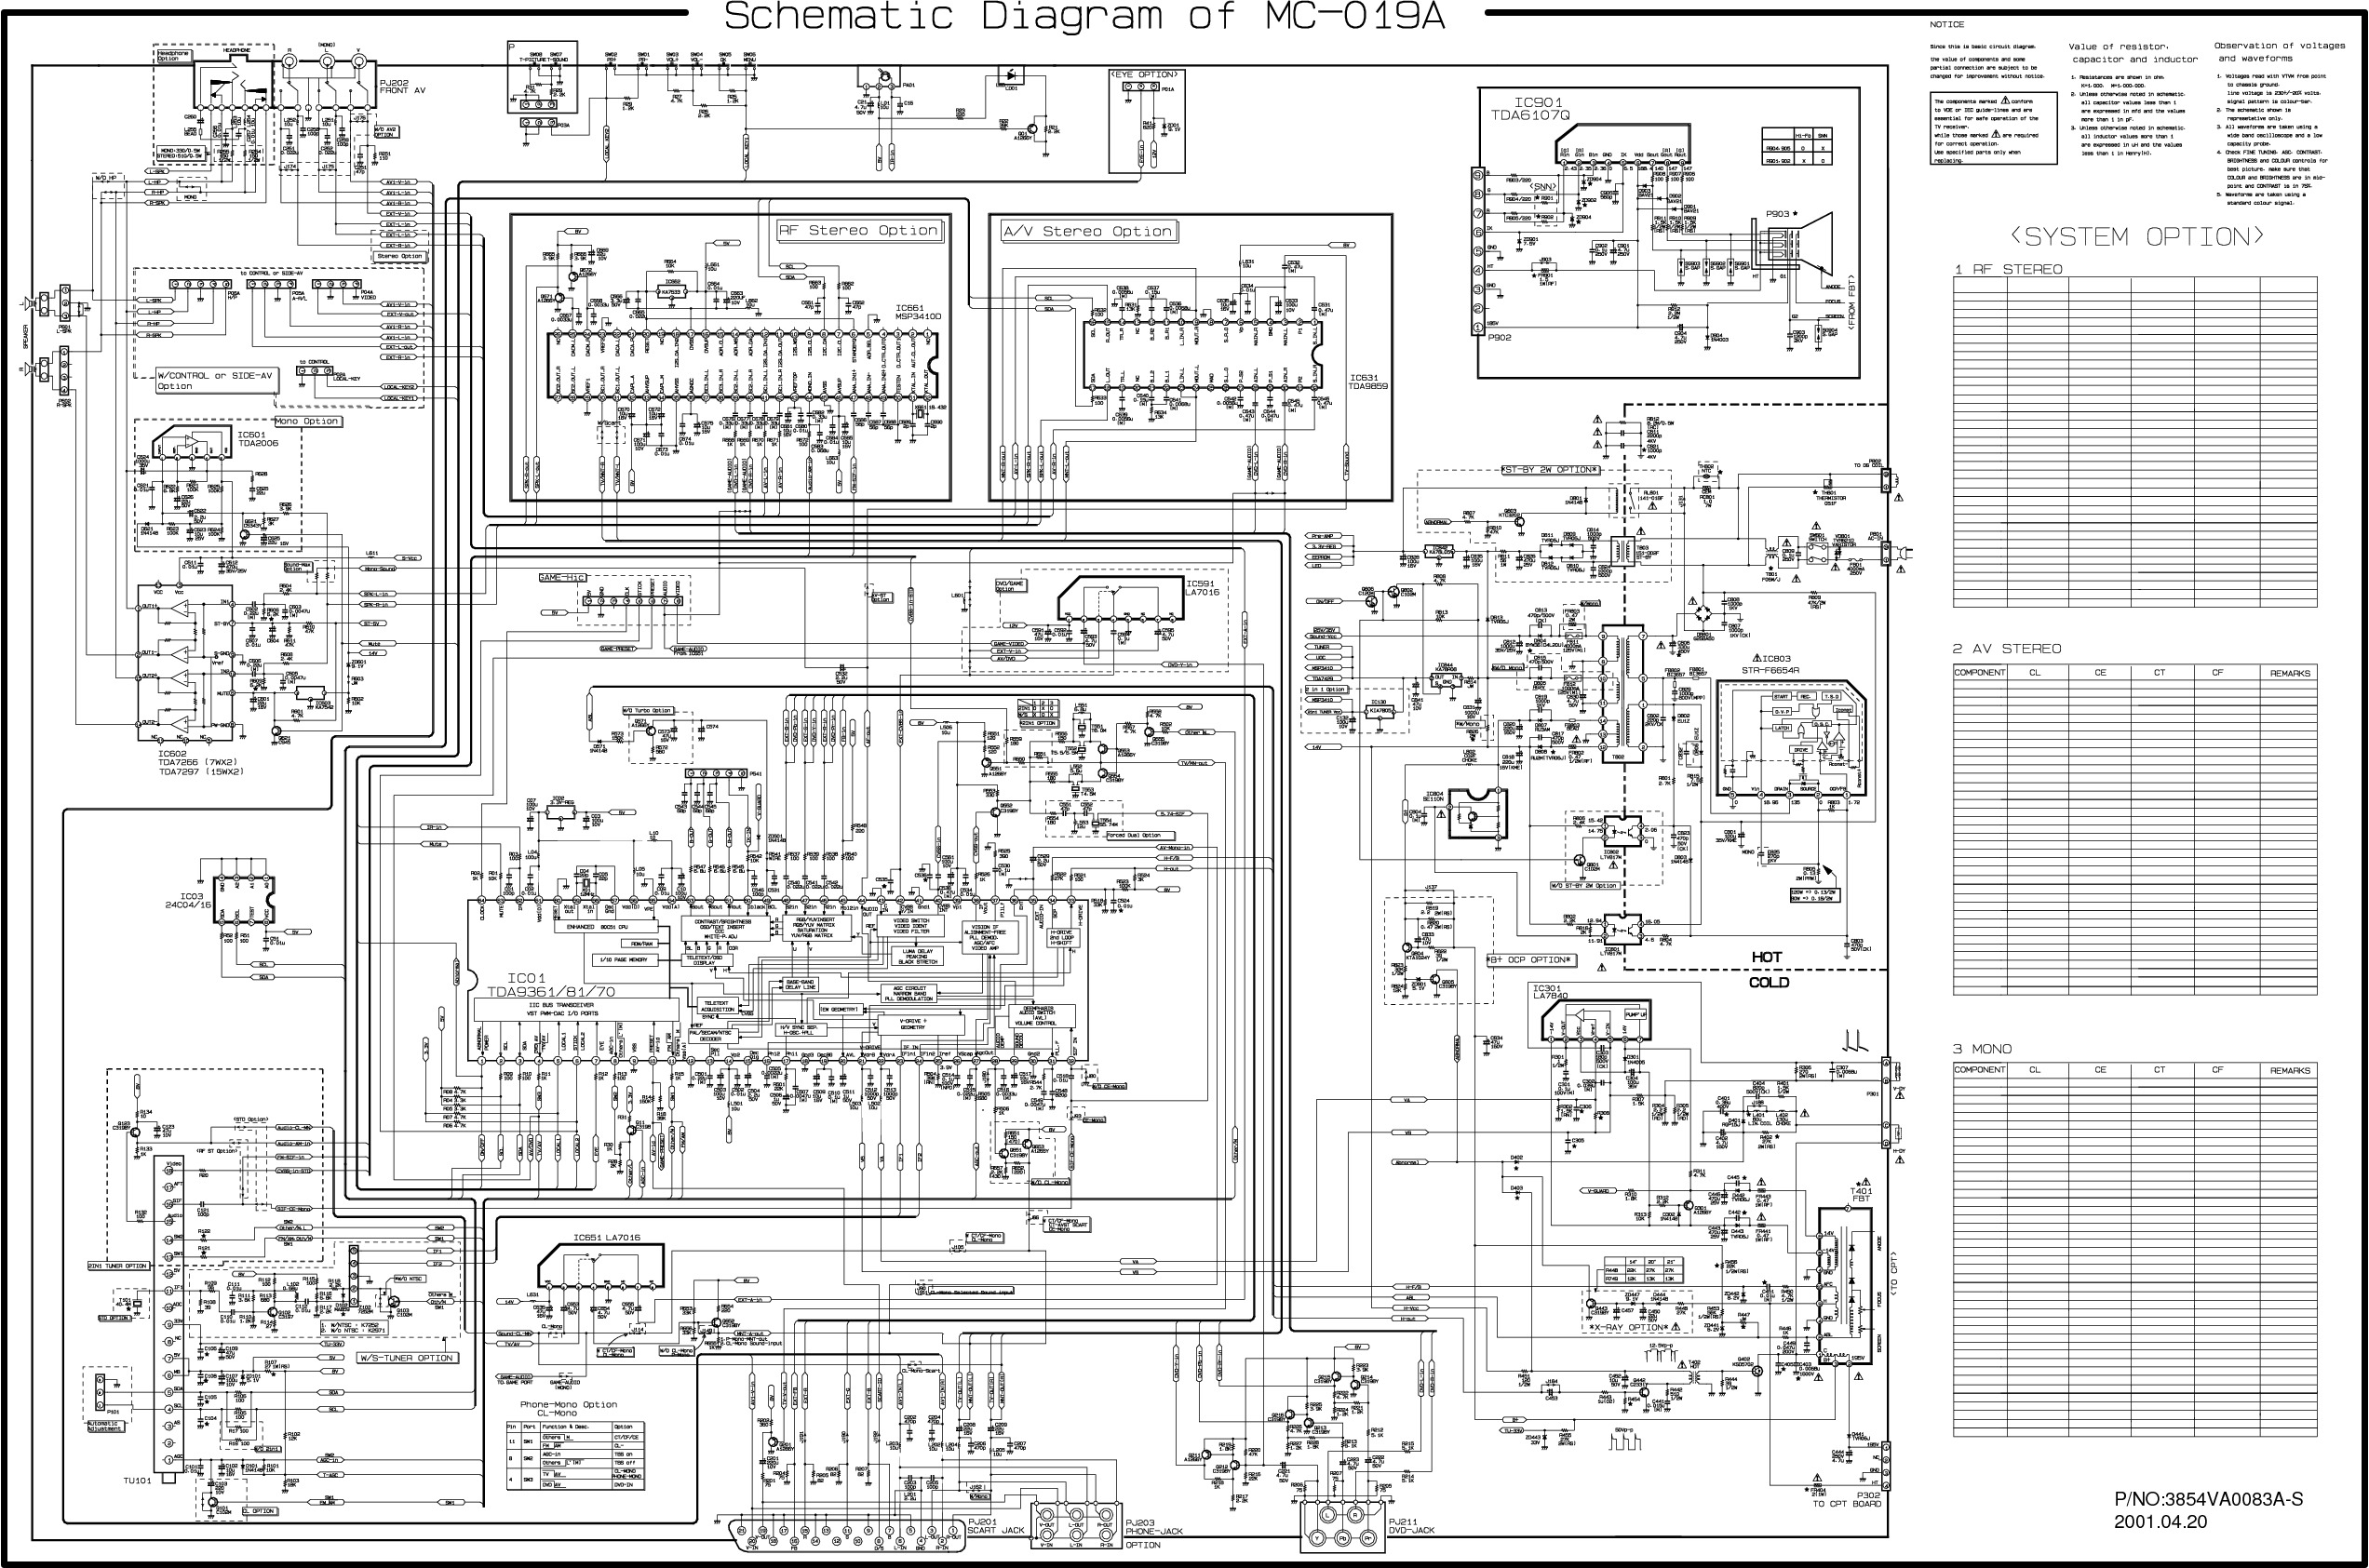 Lg Tv Diagram Archive Of Automotive Wiring Ac Dpdt Ladder Service Manual For Mc 019a Schematics Datasheets Rh Diagrams Com